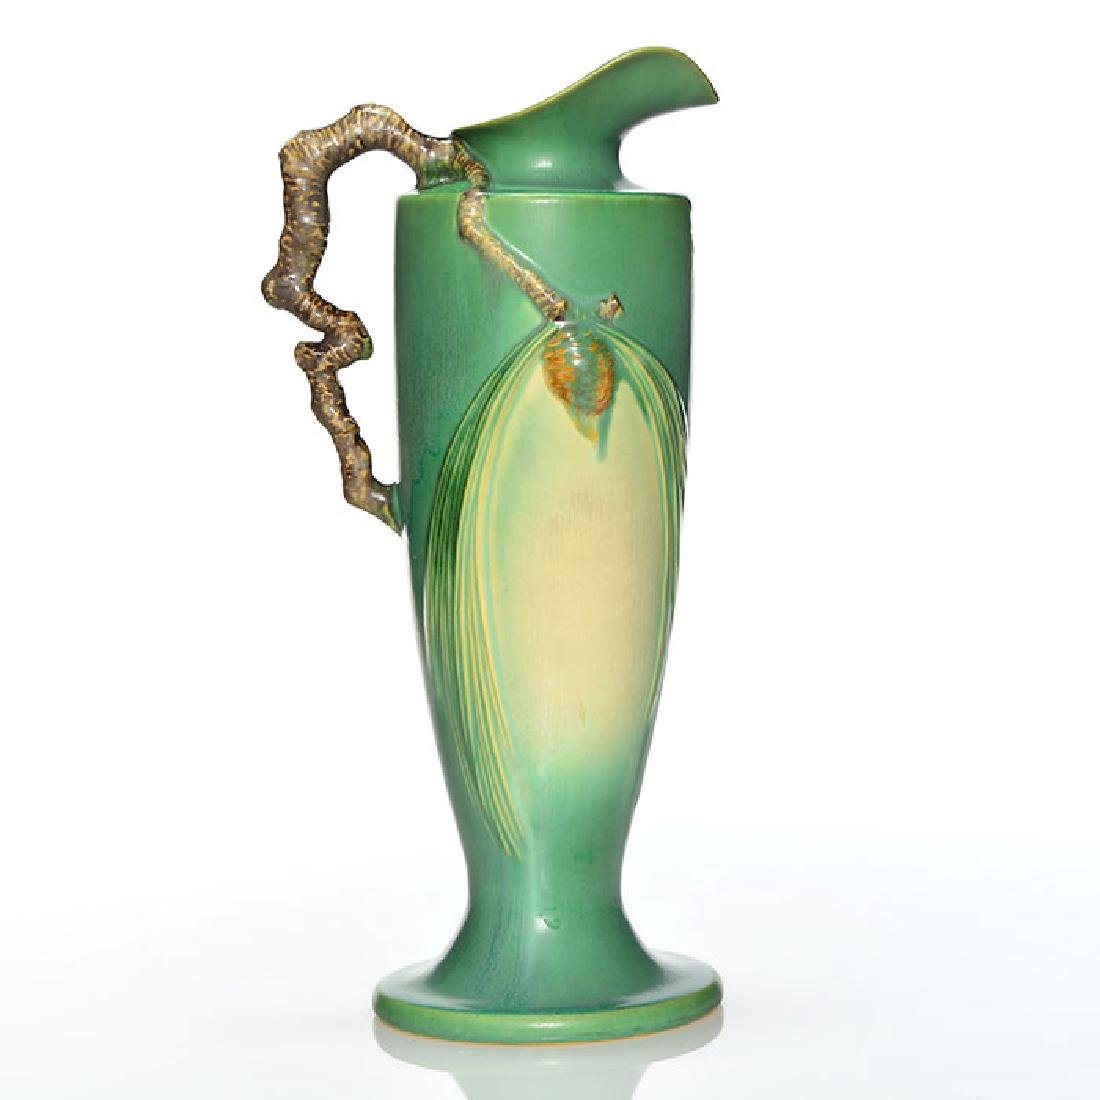 "Roseville Pine Cone Pitcher in Green, shape 851-15"", 15"